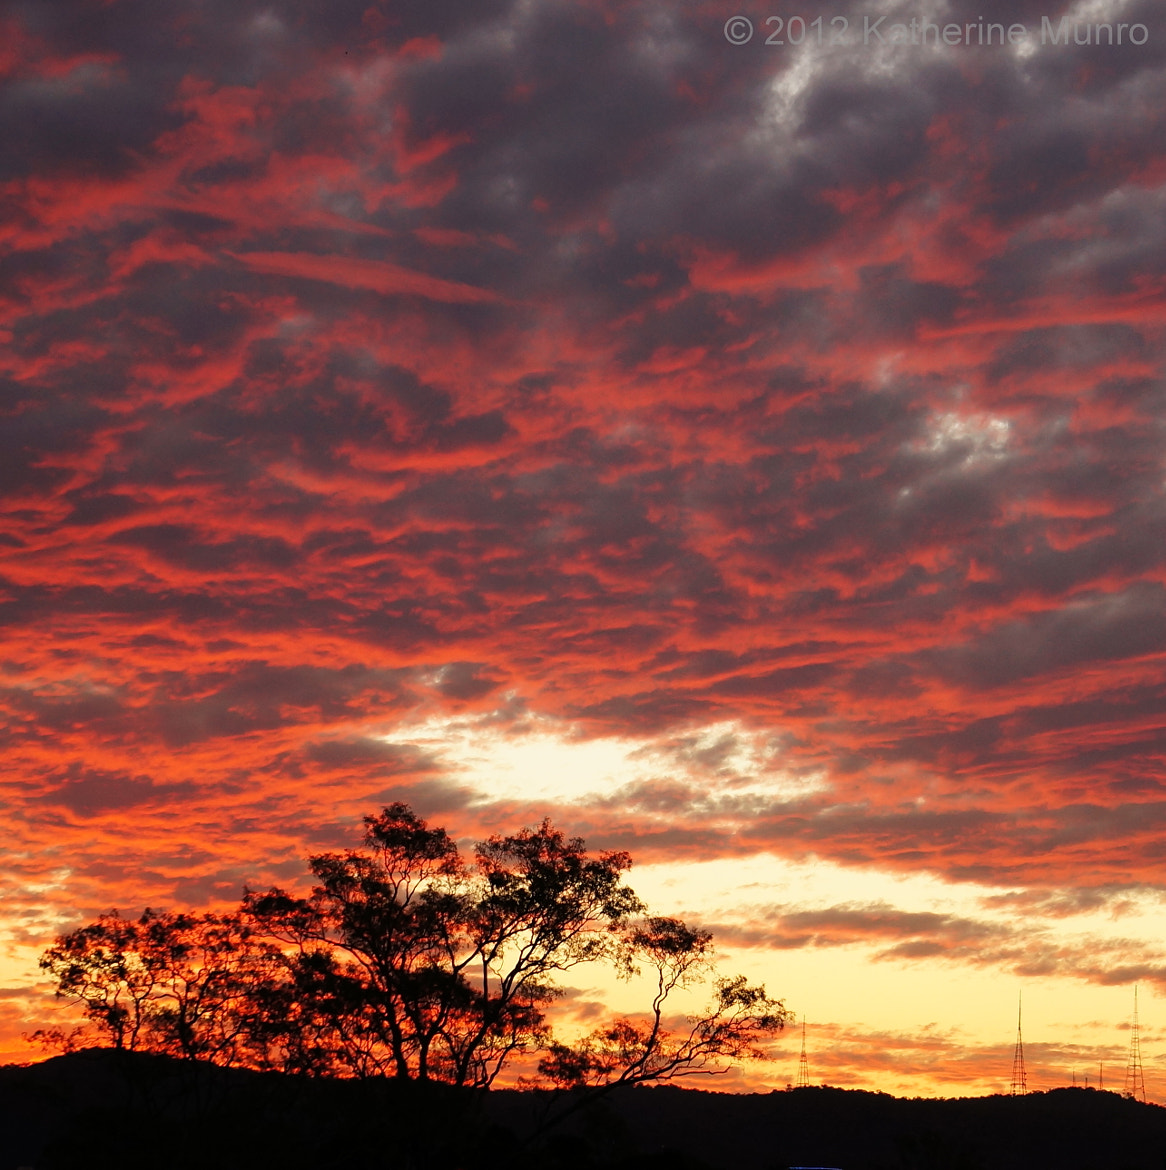 Photograph Sunset over Mt Coot-tha by Katherine Munro on 500px